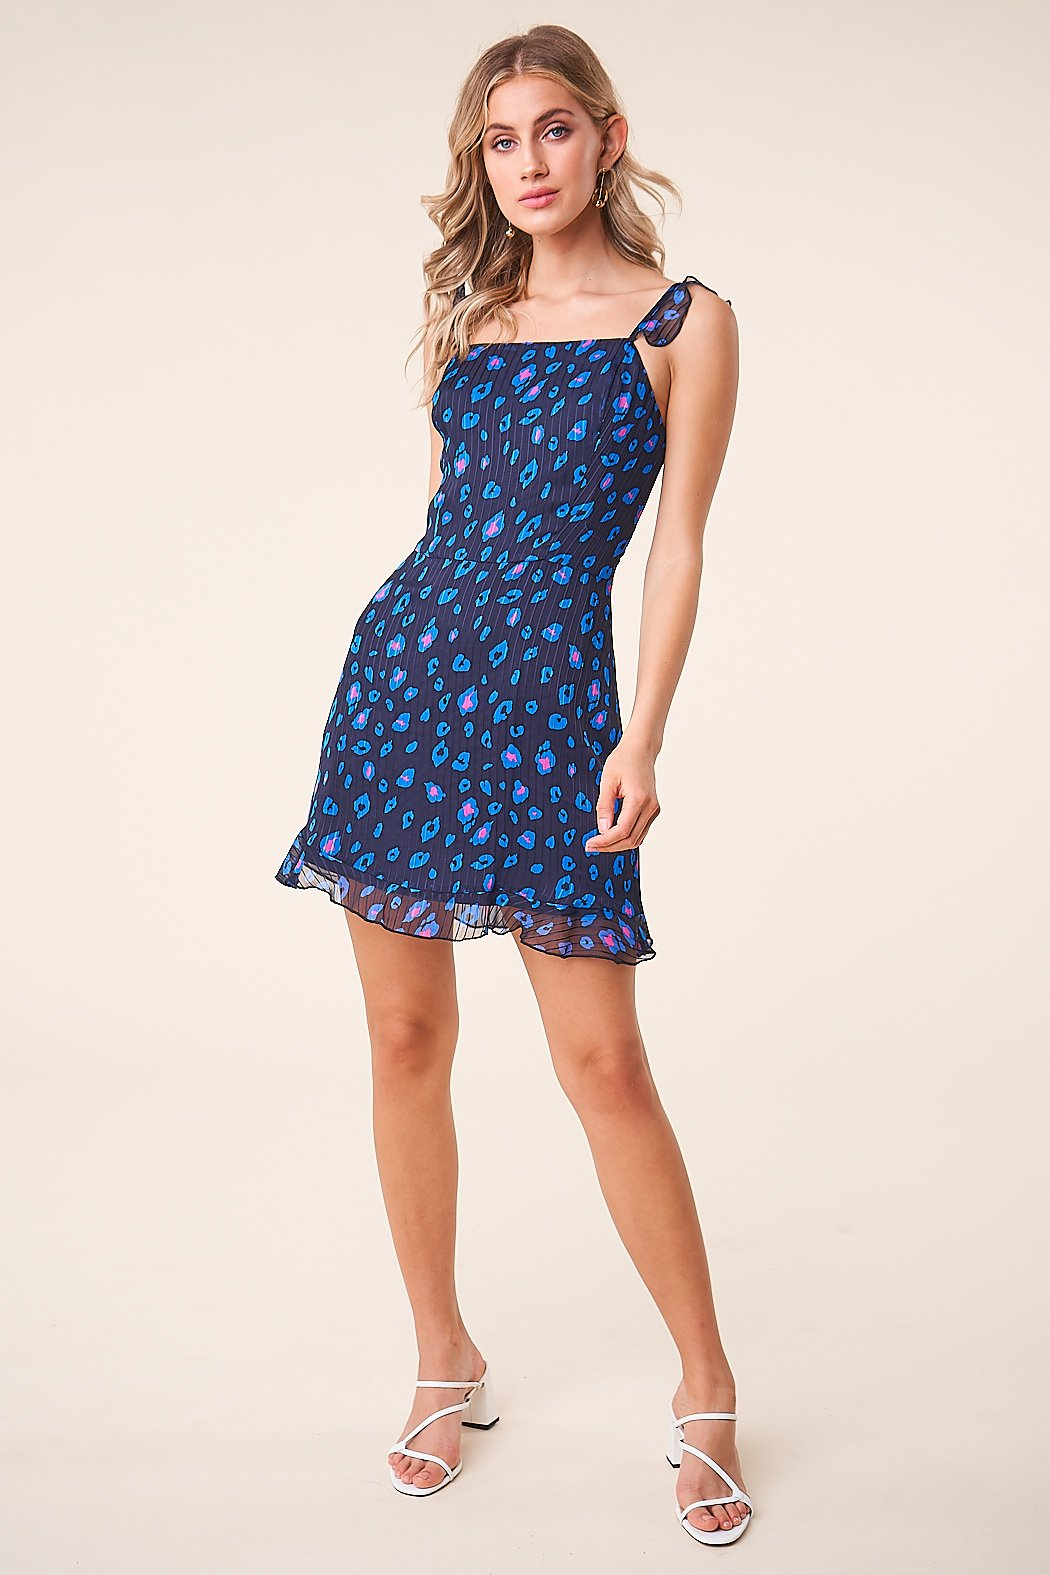 Sugarlips Neon Carnival Leopard Square Neck Dress